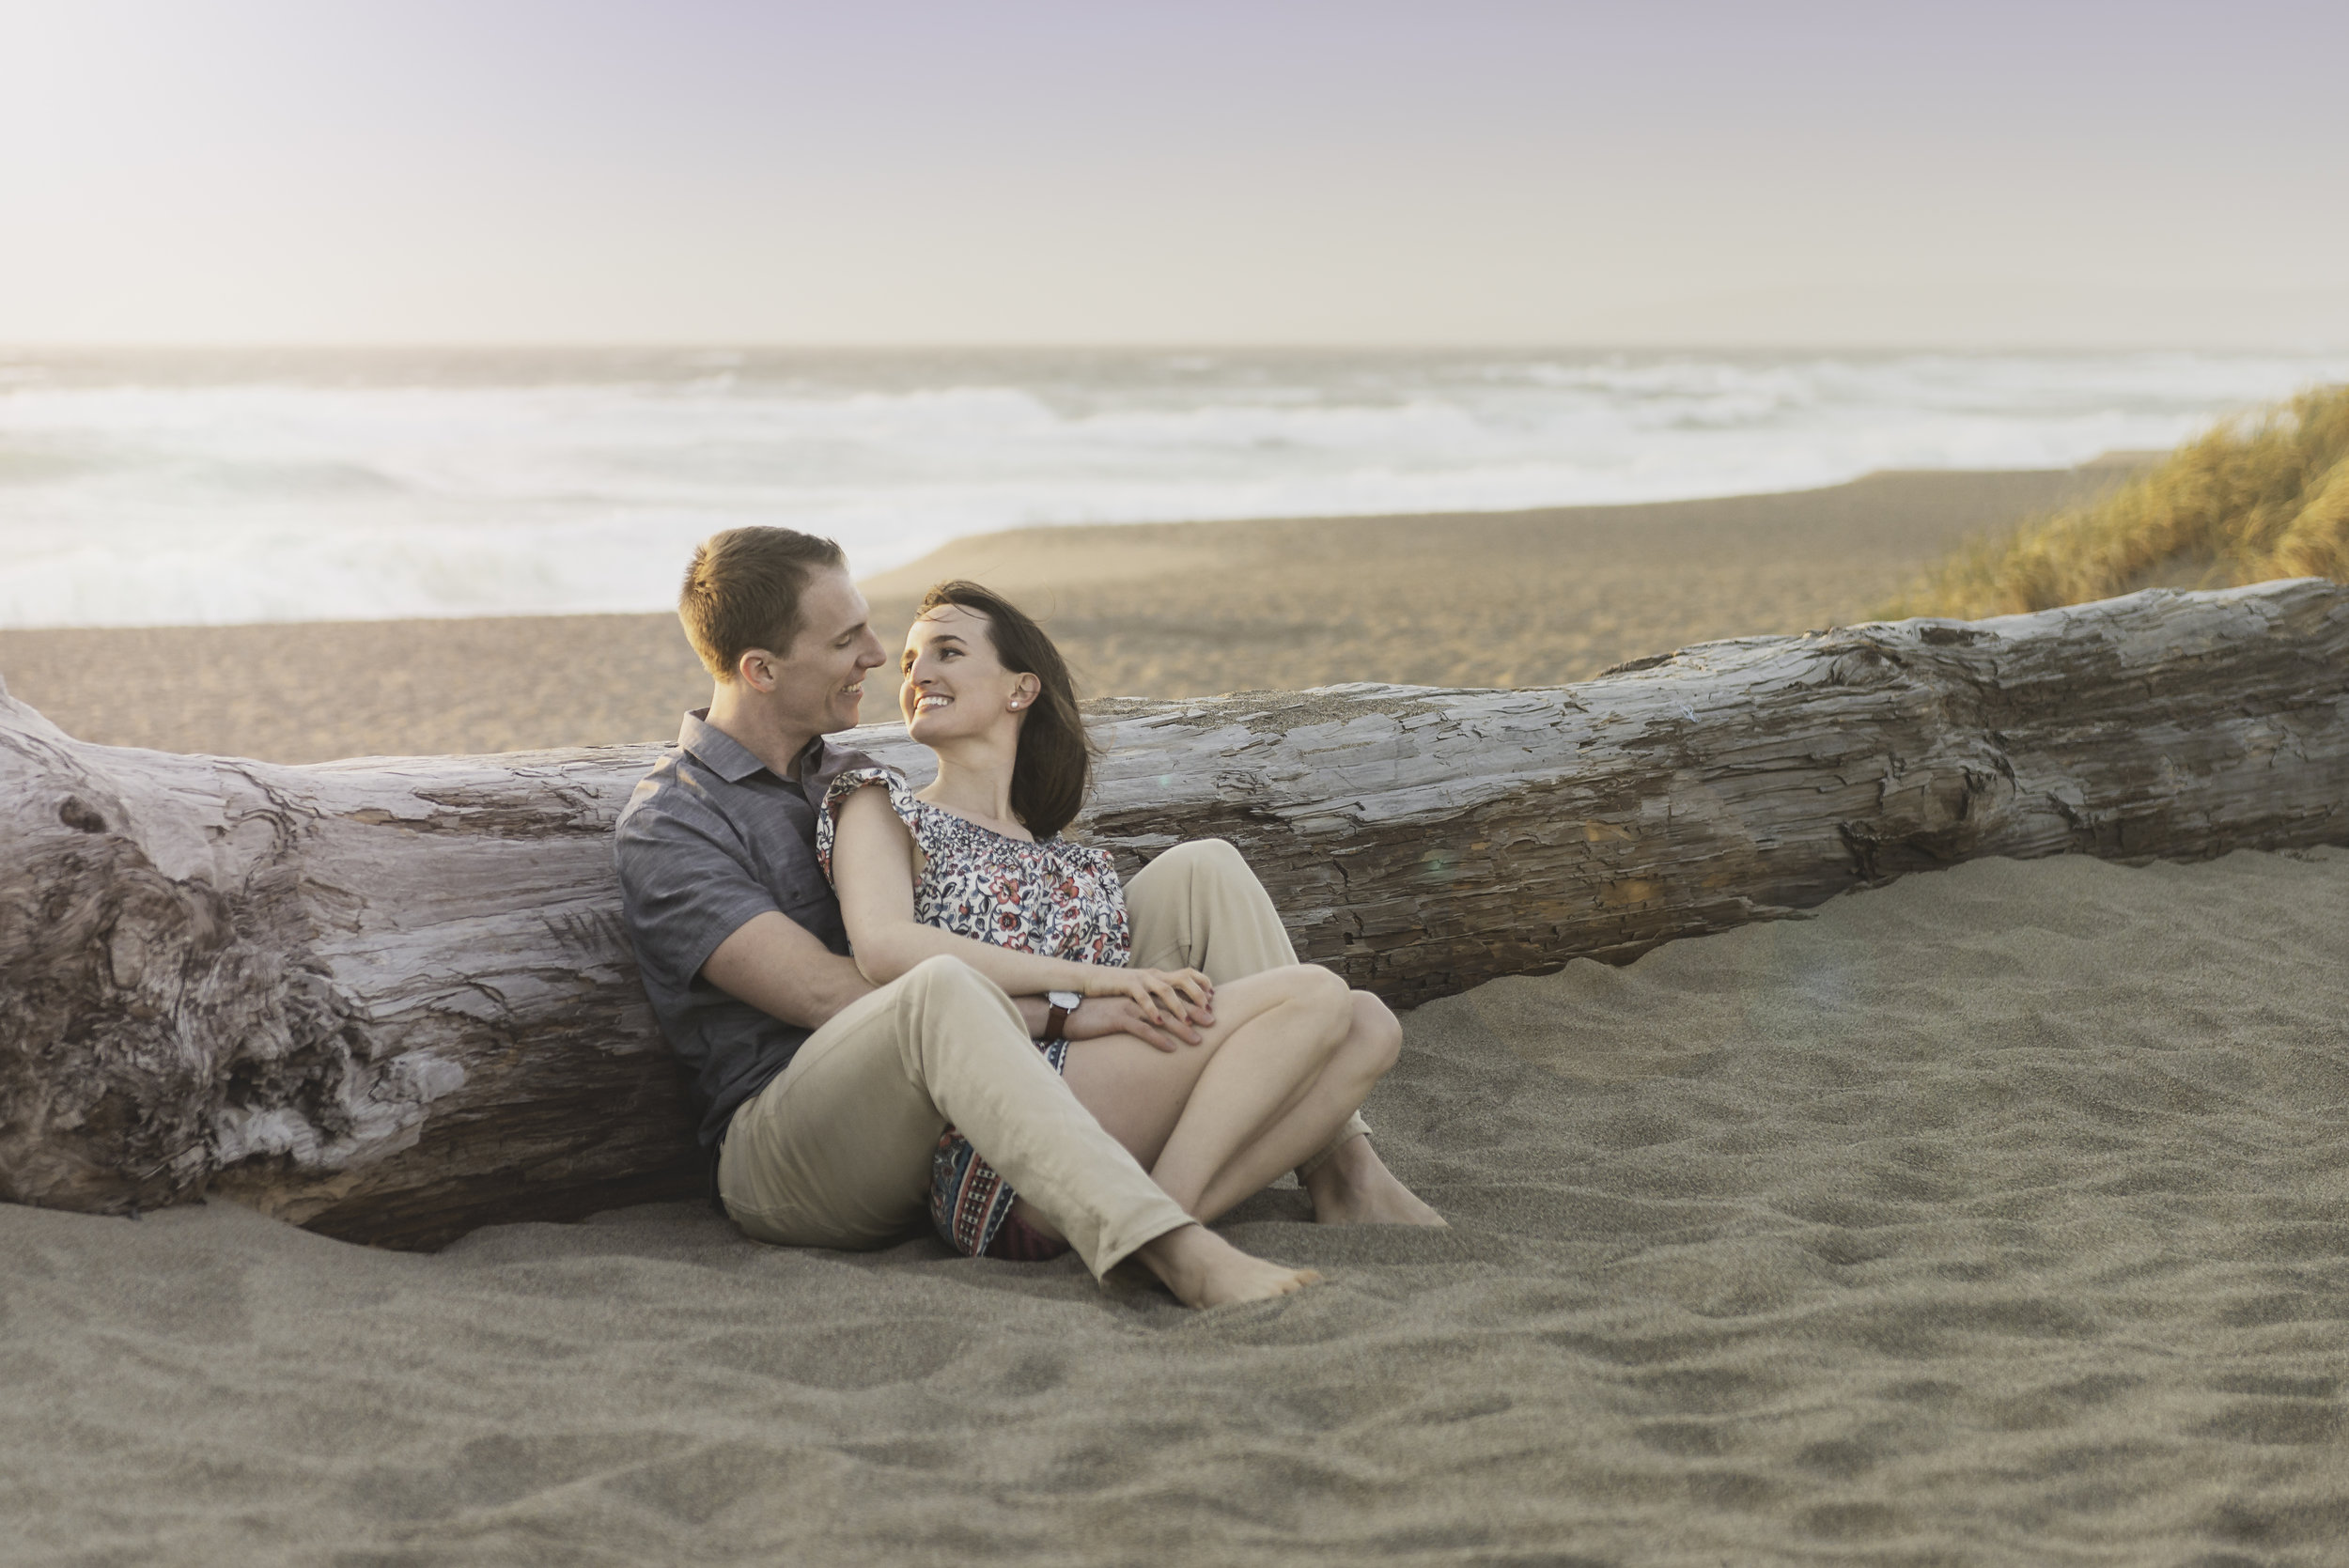 An engaged couple sitting in the sand with their backs to a fallen log that washed ashore.